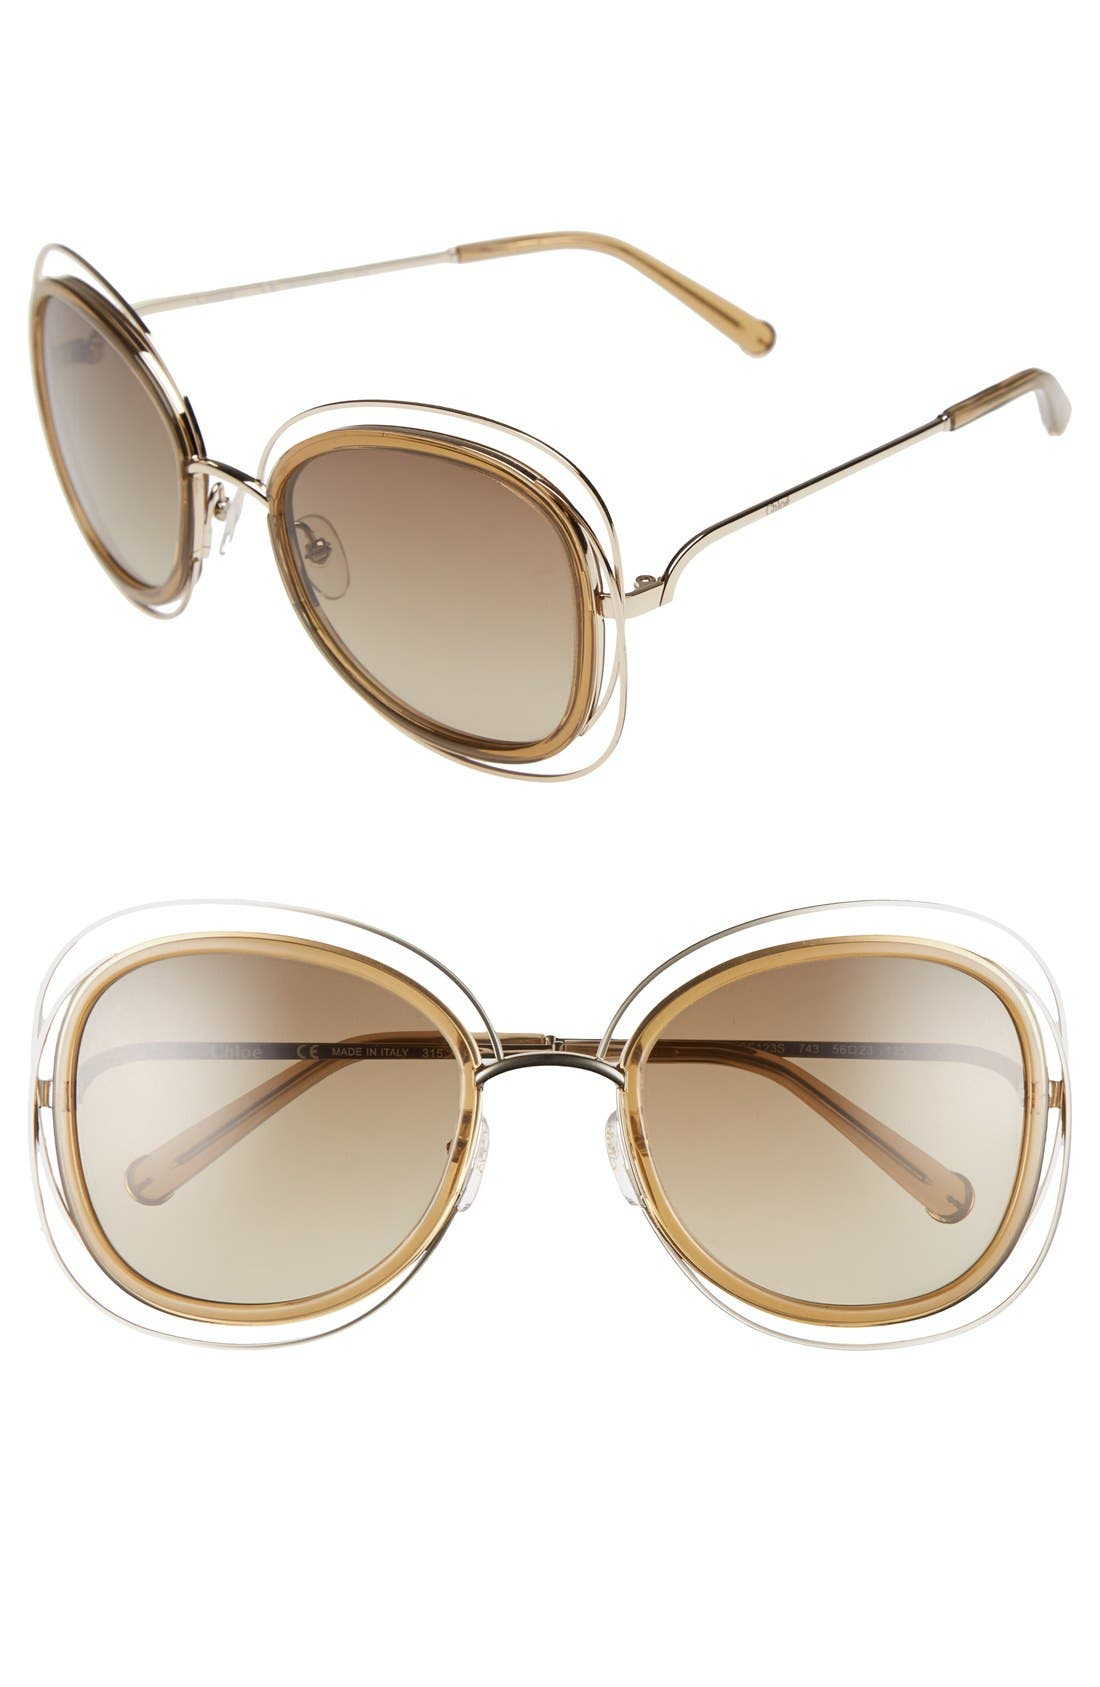 Main Image - Chloé 'Carlina' 56mm Gradient Sunglasses